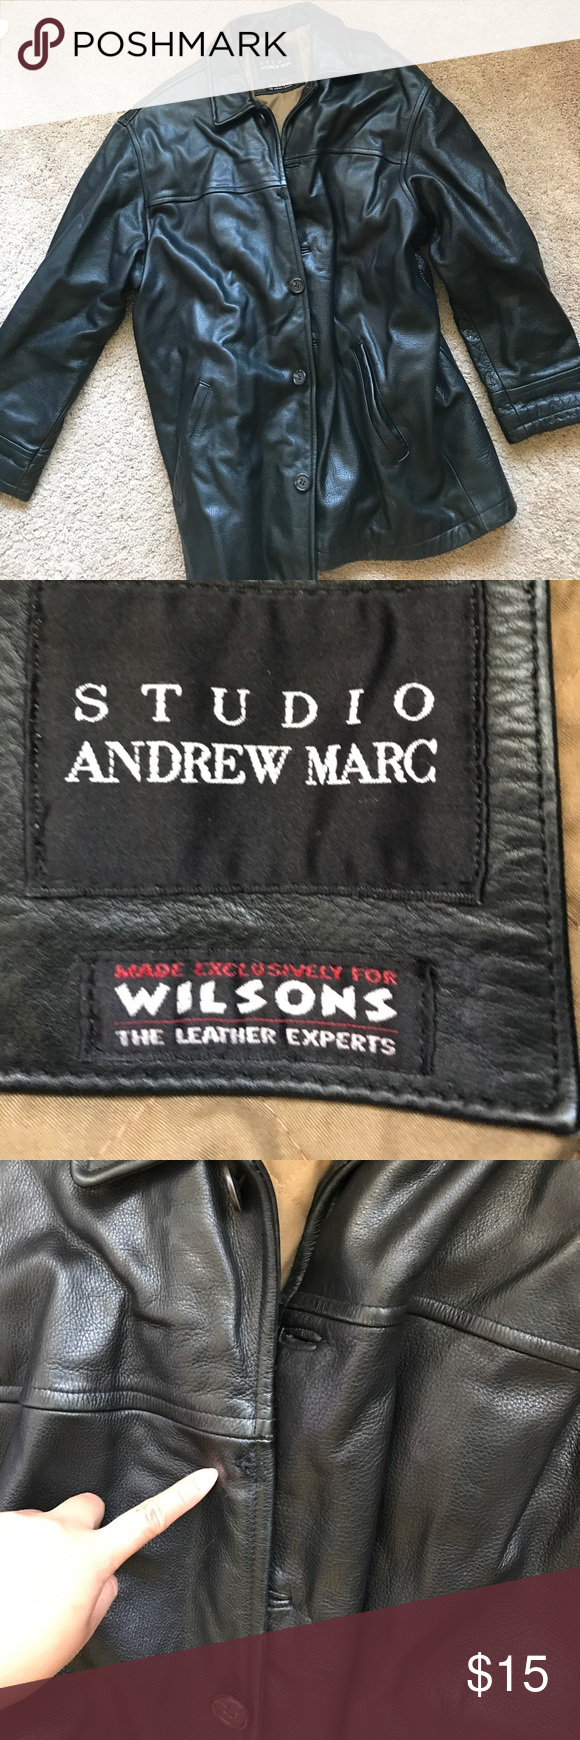 Leather jacket from Studio - Andrew Marc Great condition, only missing one button on the jacket. Made exclusively for Wilsons Andrew Marc Jackets & Coats